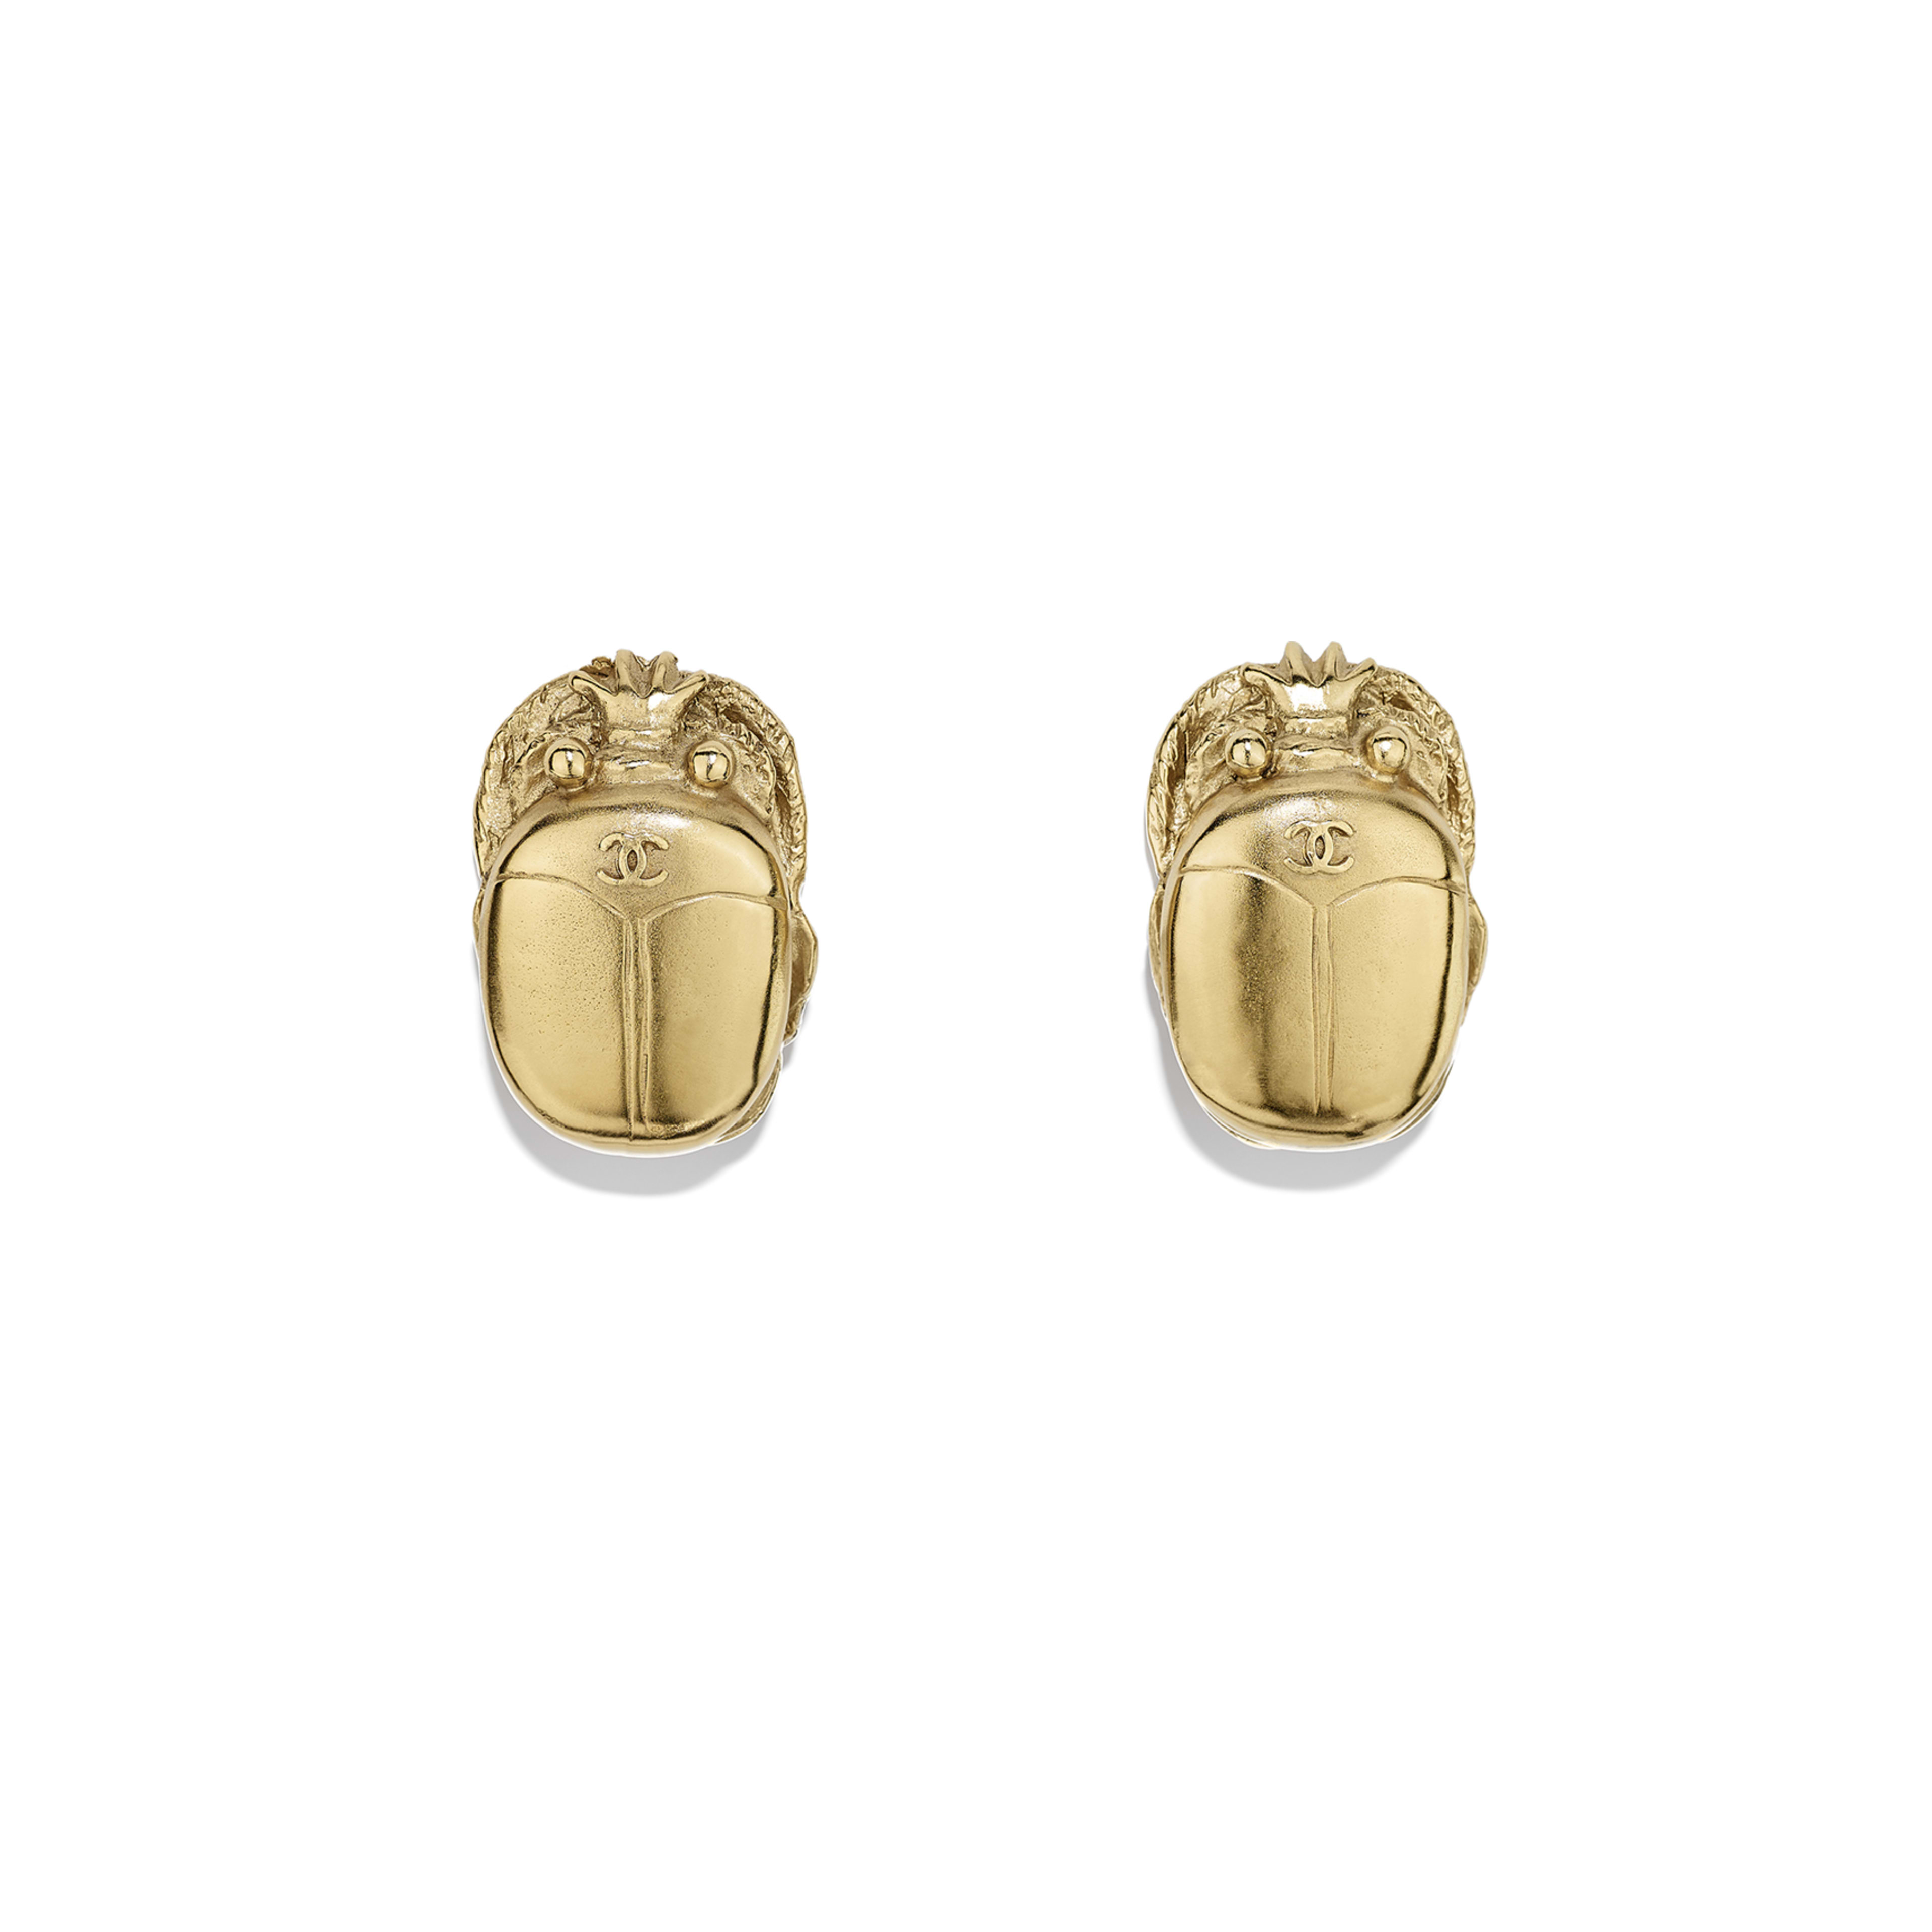 Clip-on Earrings - Gold - Metal - Default view - see full sized version